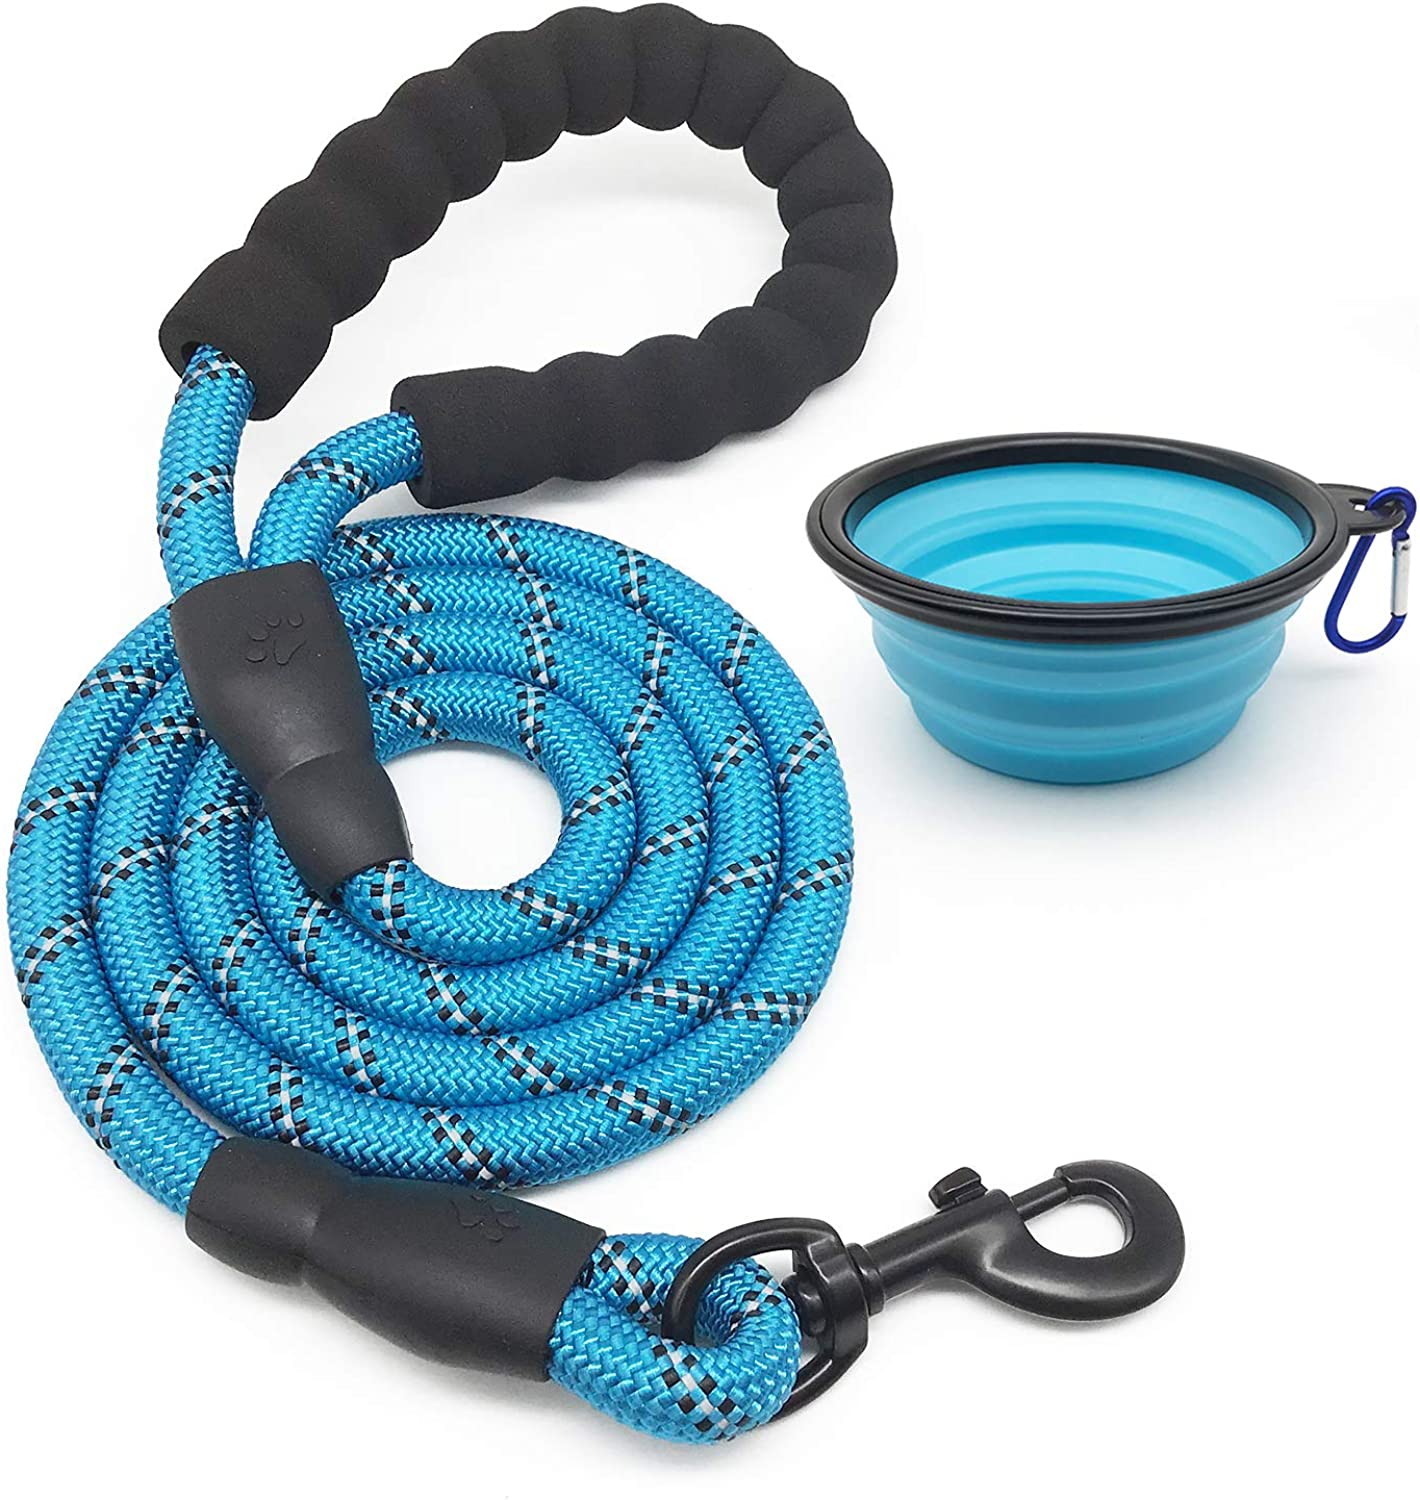 5 FT Strong Dog Leash with Comfortable Padded Handle Highly Reflective Threads for Medium and Large Dogs with a Free Collapsible Pet Bowl 360° Swivel Clip Strong Nylon Climbing Rope Leash bluee color